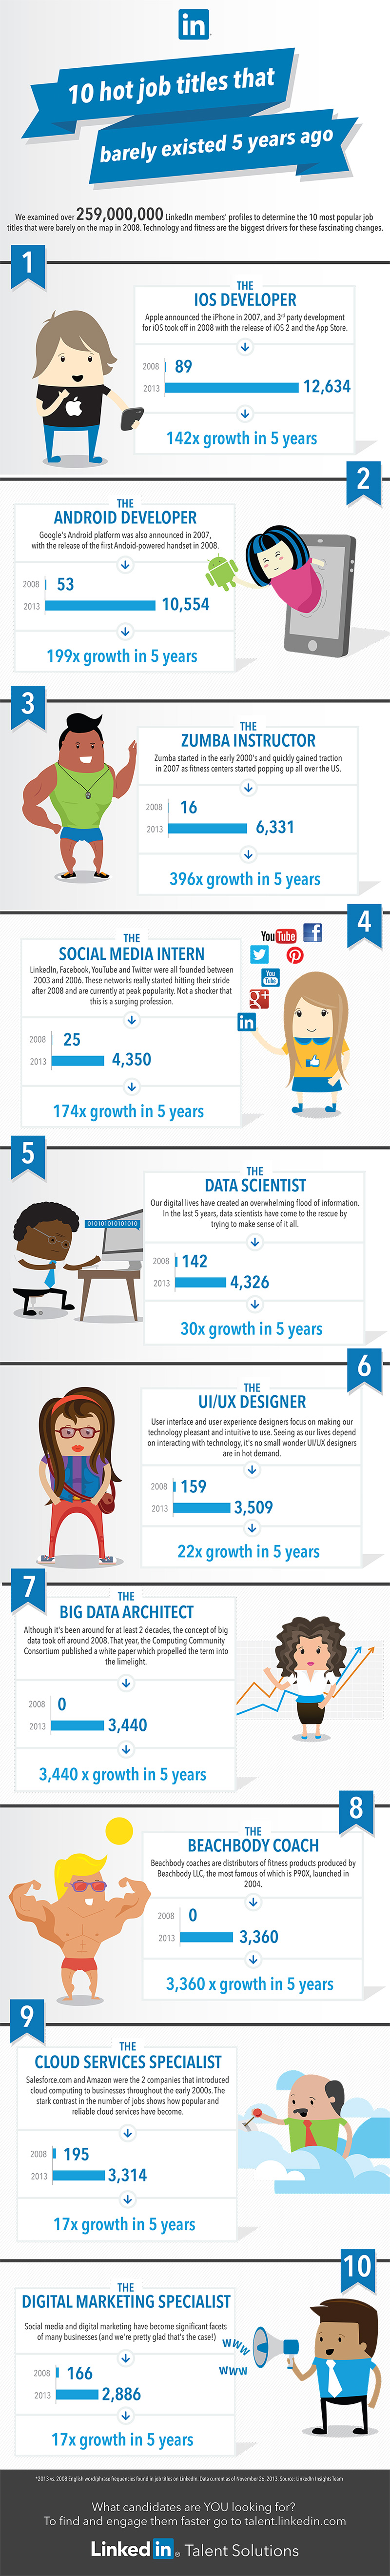 jobs that did not exist 5 years ago